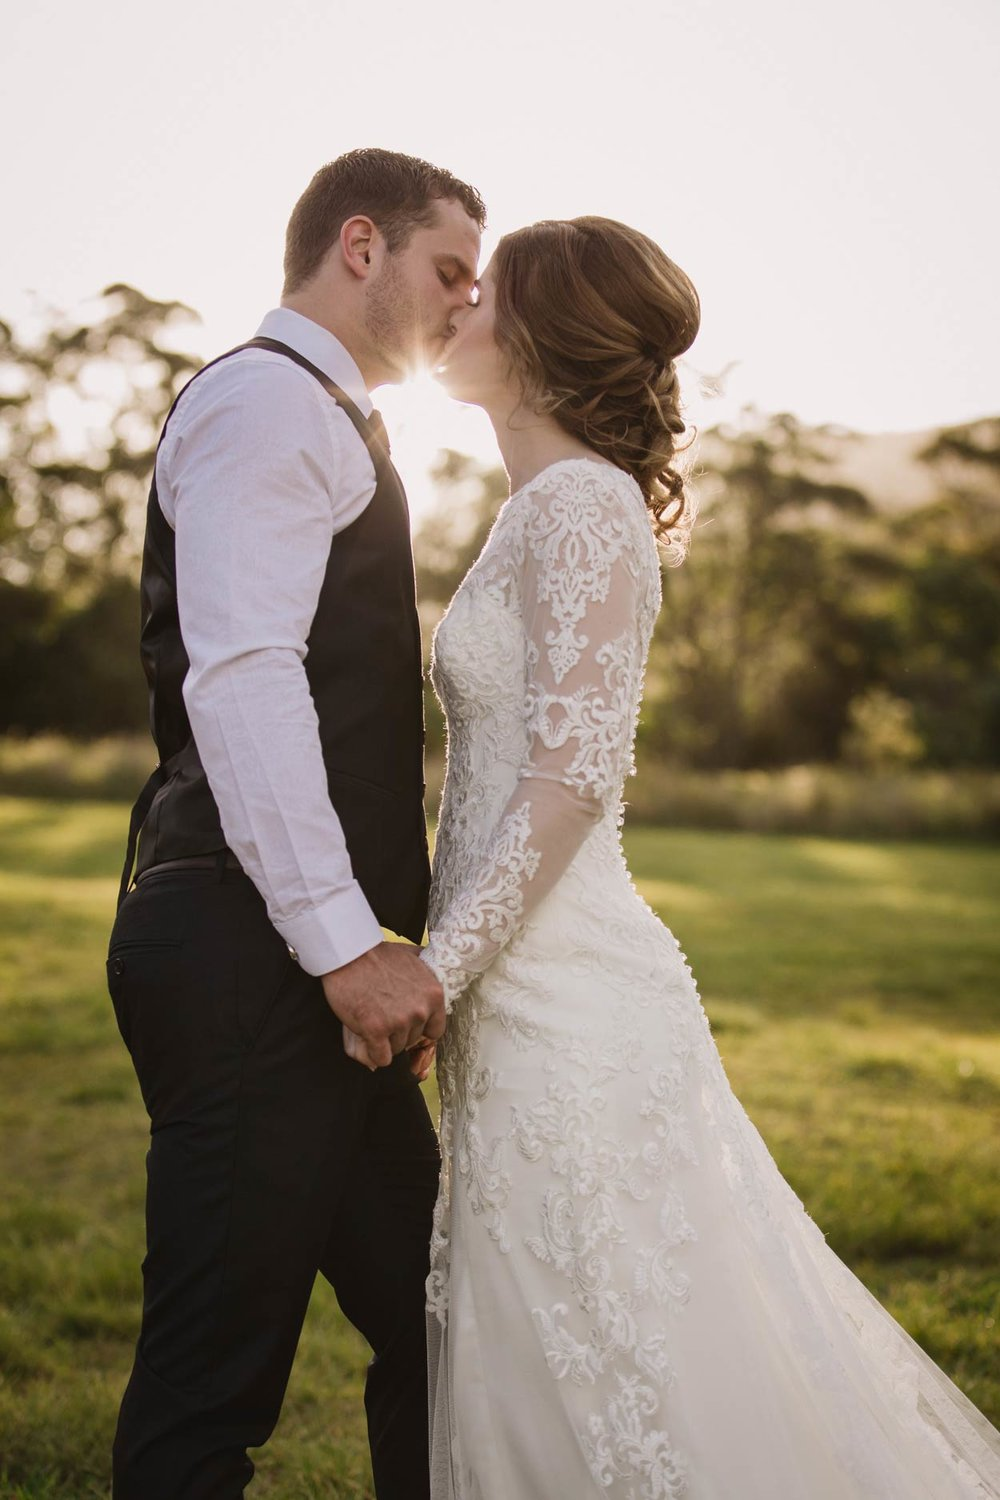 Cooroy Eco Wedding Destination Photographer - Brisbane, Sunshine Coast, Australian Blog